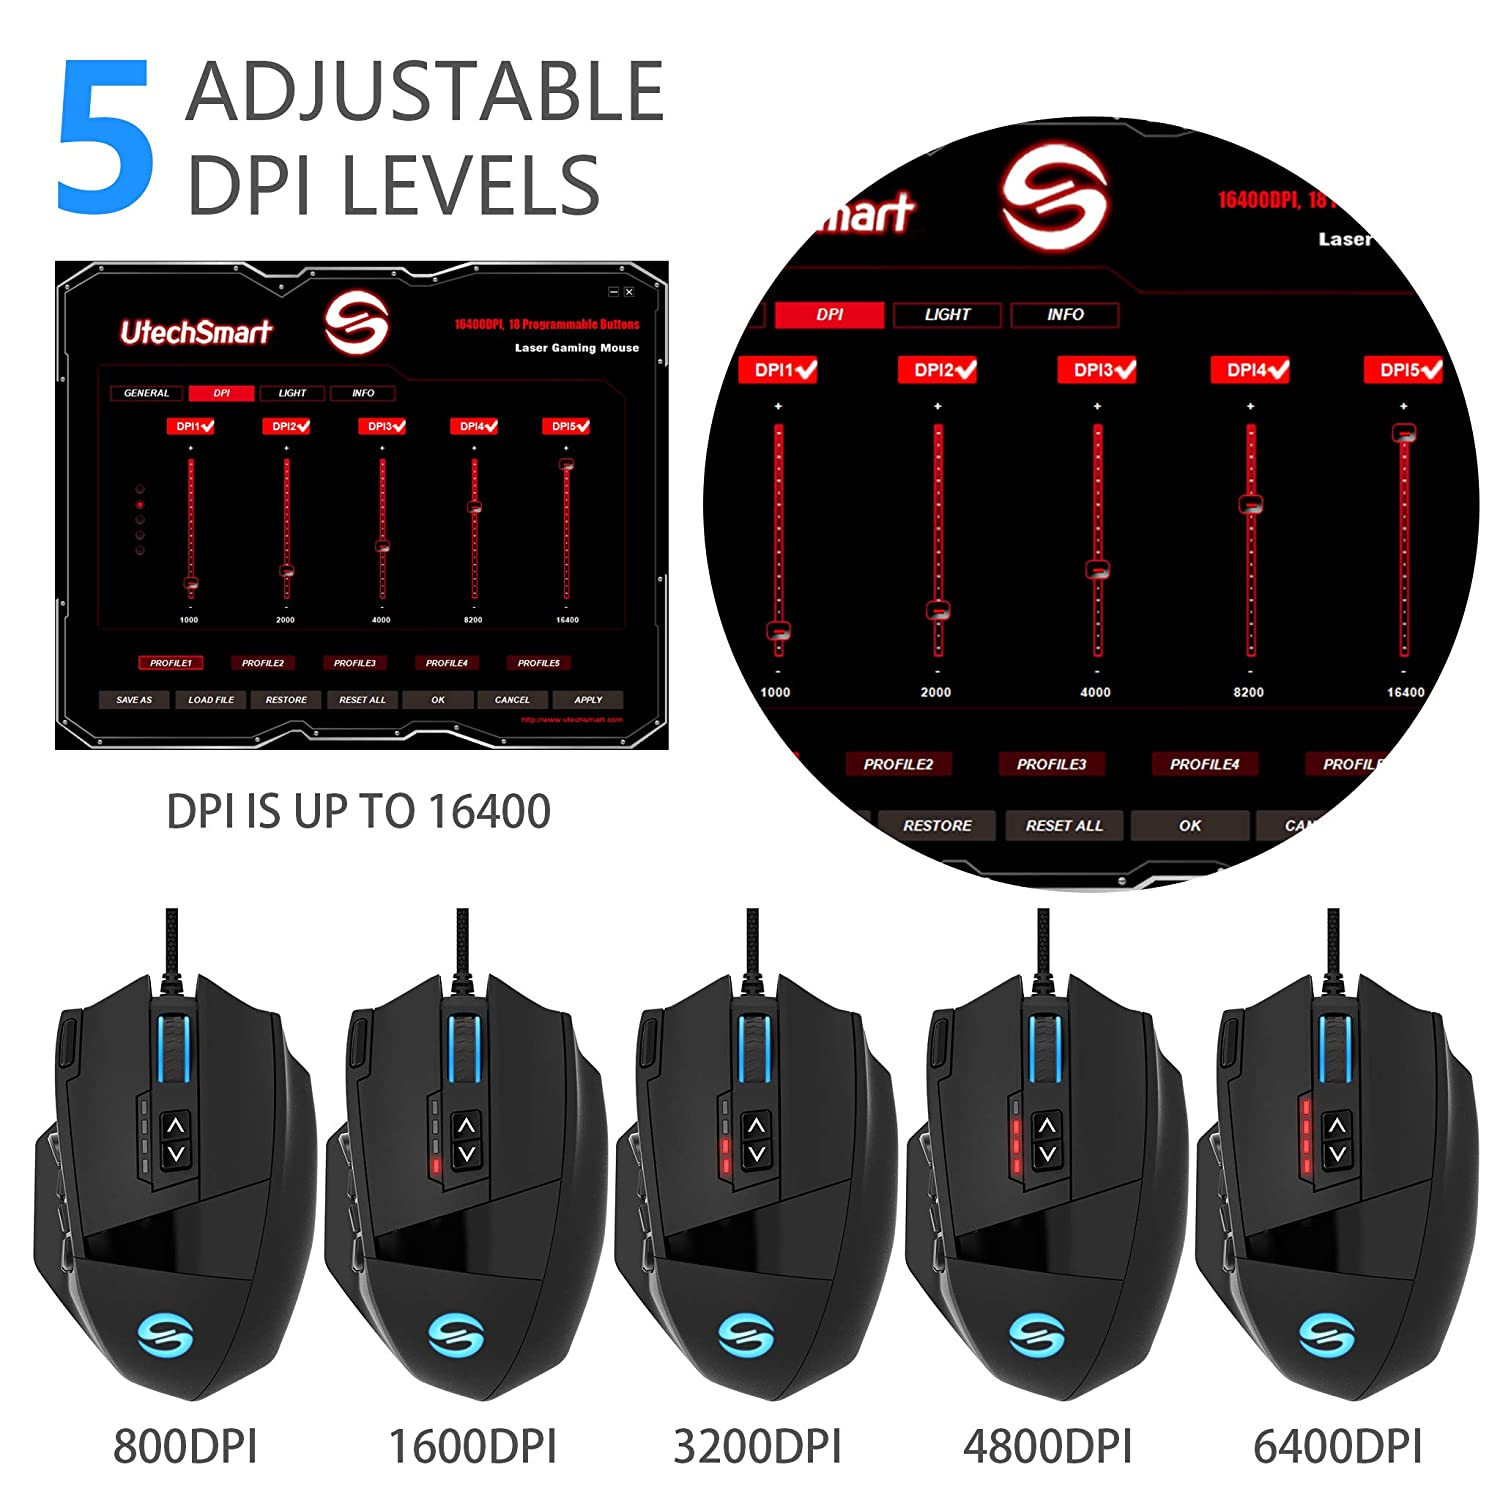 Interchangeable Side Button Gaming Mice UtechSmart Venus Gaming Mouse Programmable Buttons 16400DPI High Precision Laser RGB MMO Gaming Mouse Breathing Light,Ergonomic Optical